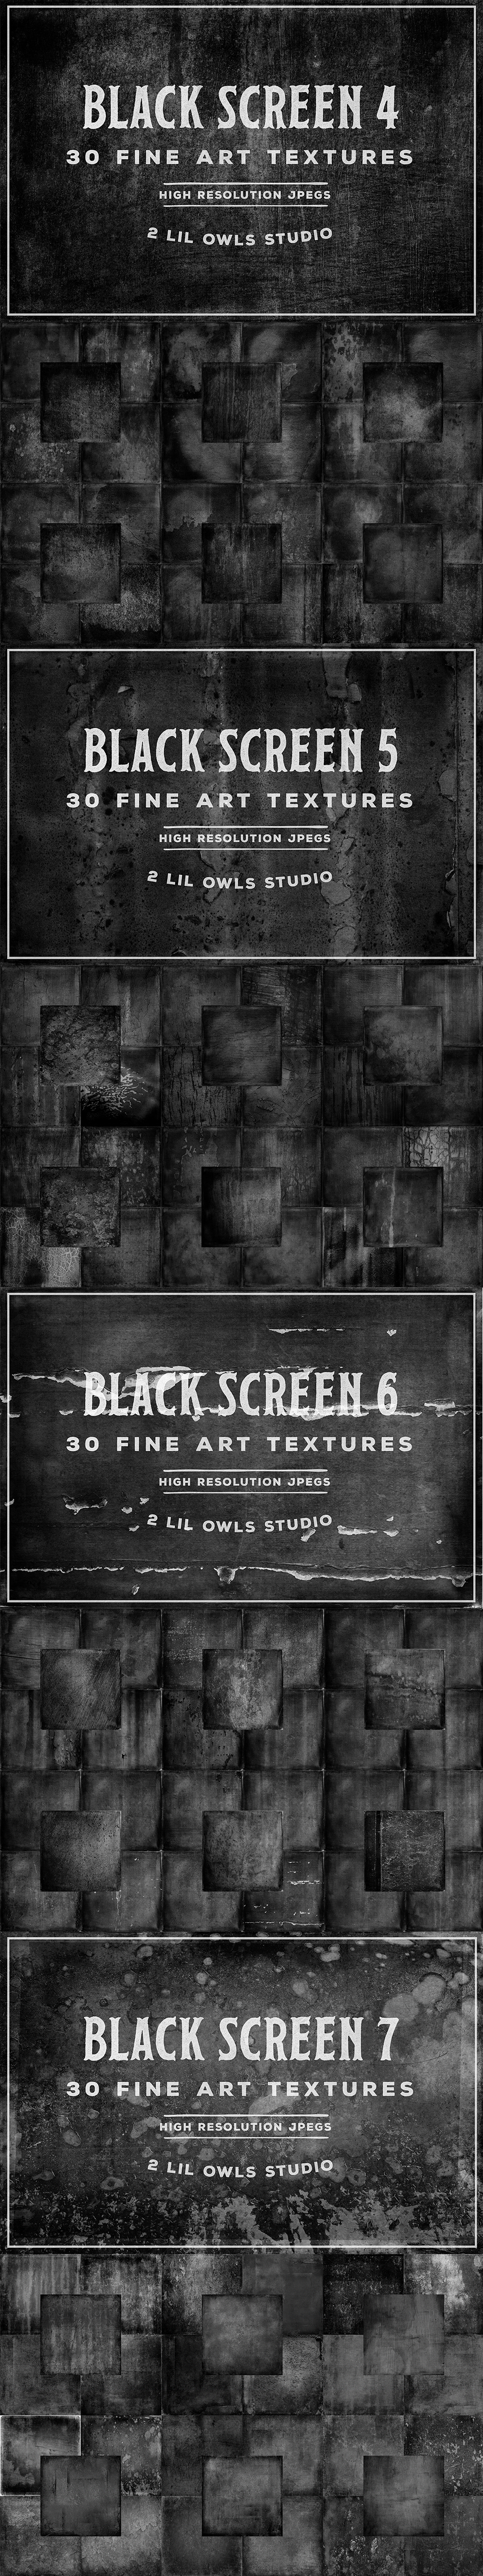 Black Screen Textures Bundle